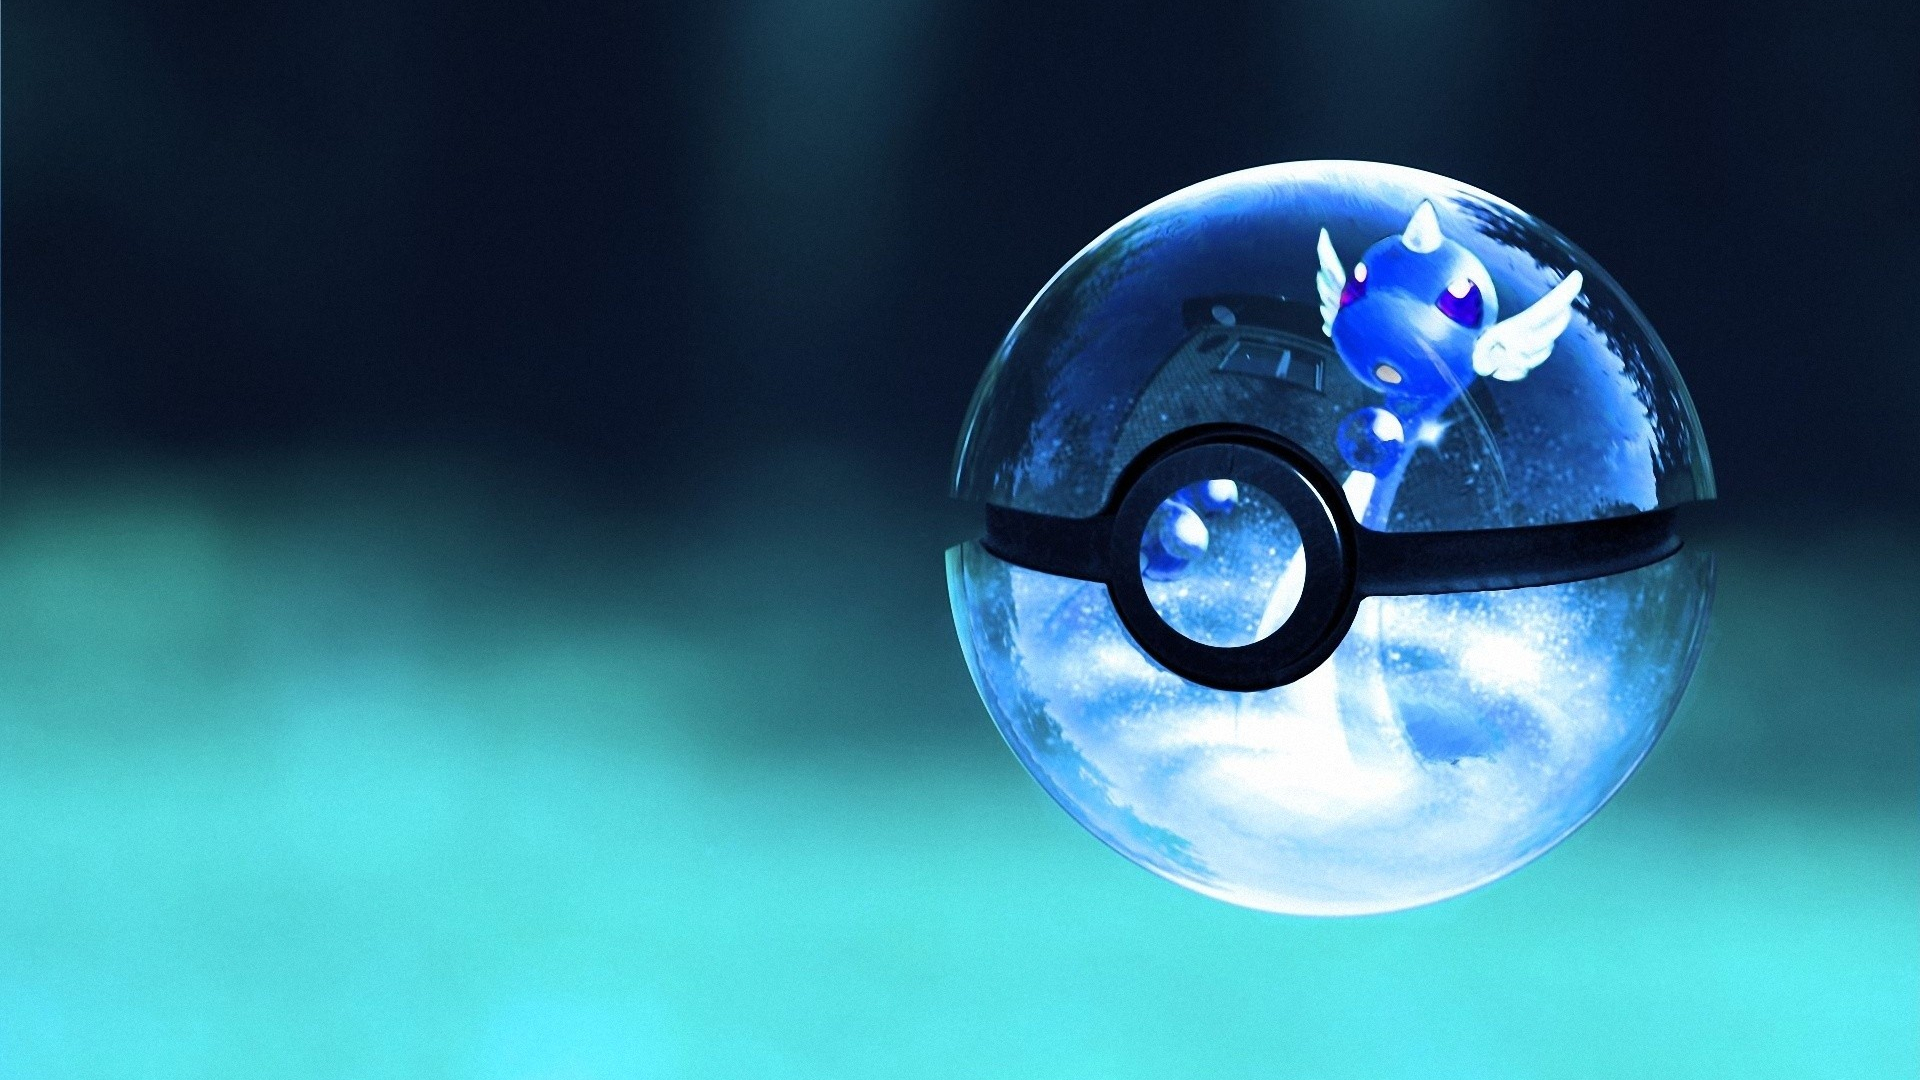 Free Download Pokemon Wallpaper Hd 3d 1920x1200 For Your